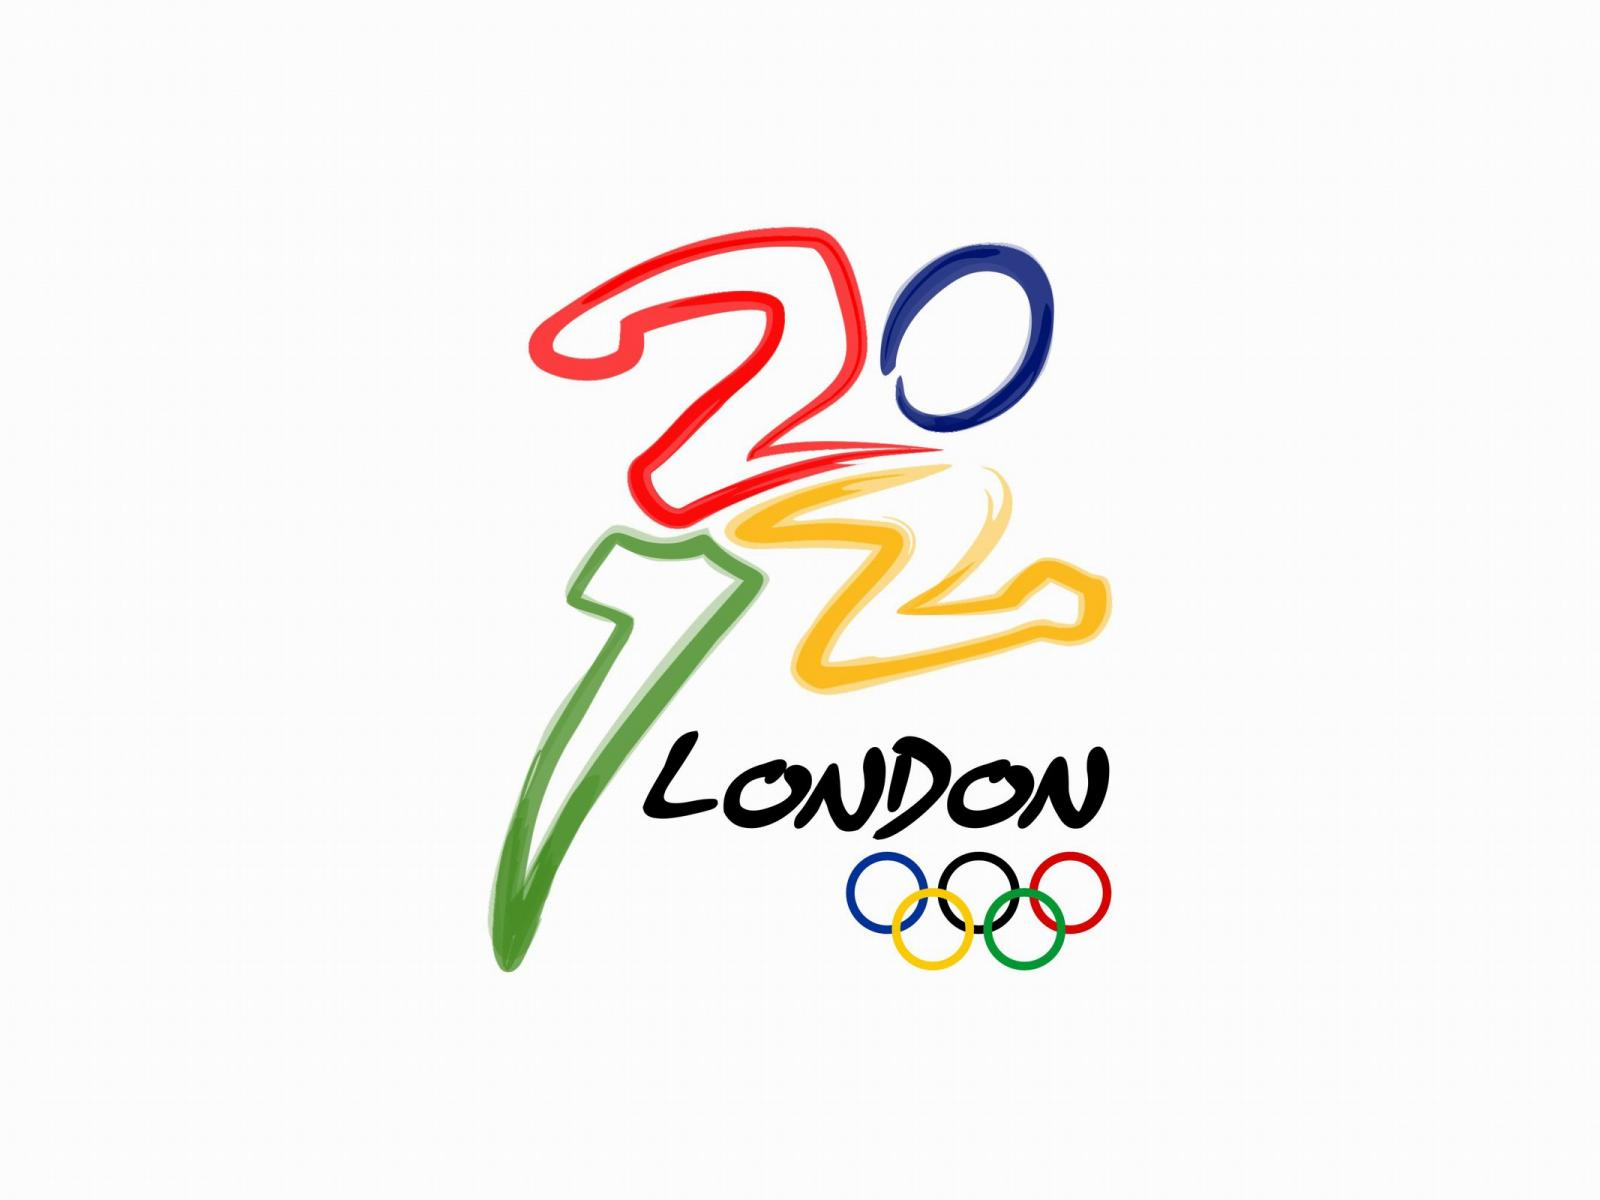 london-olympics-2012-logo-wallpaper